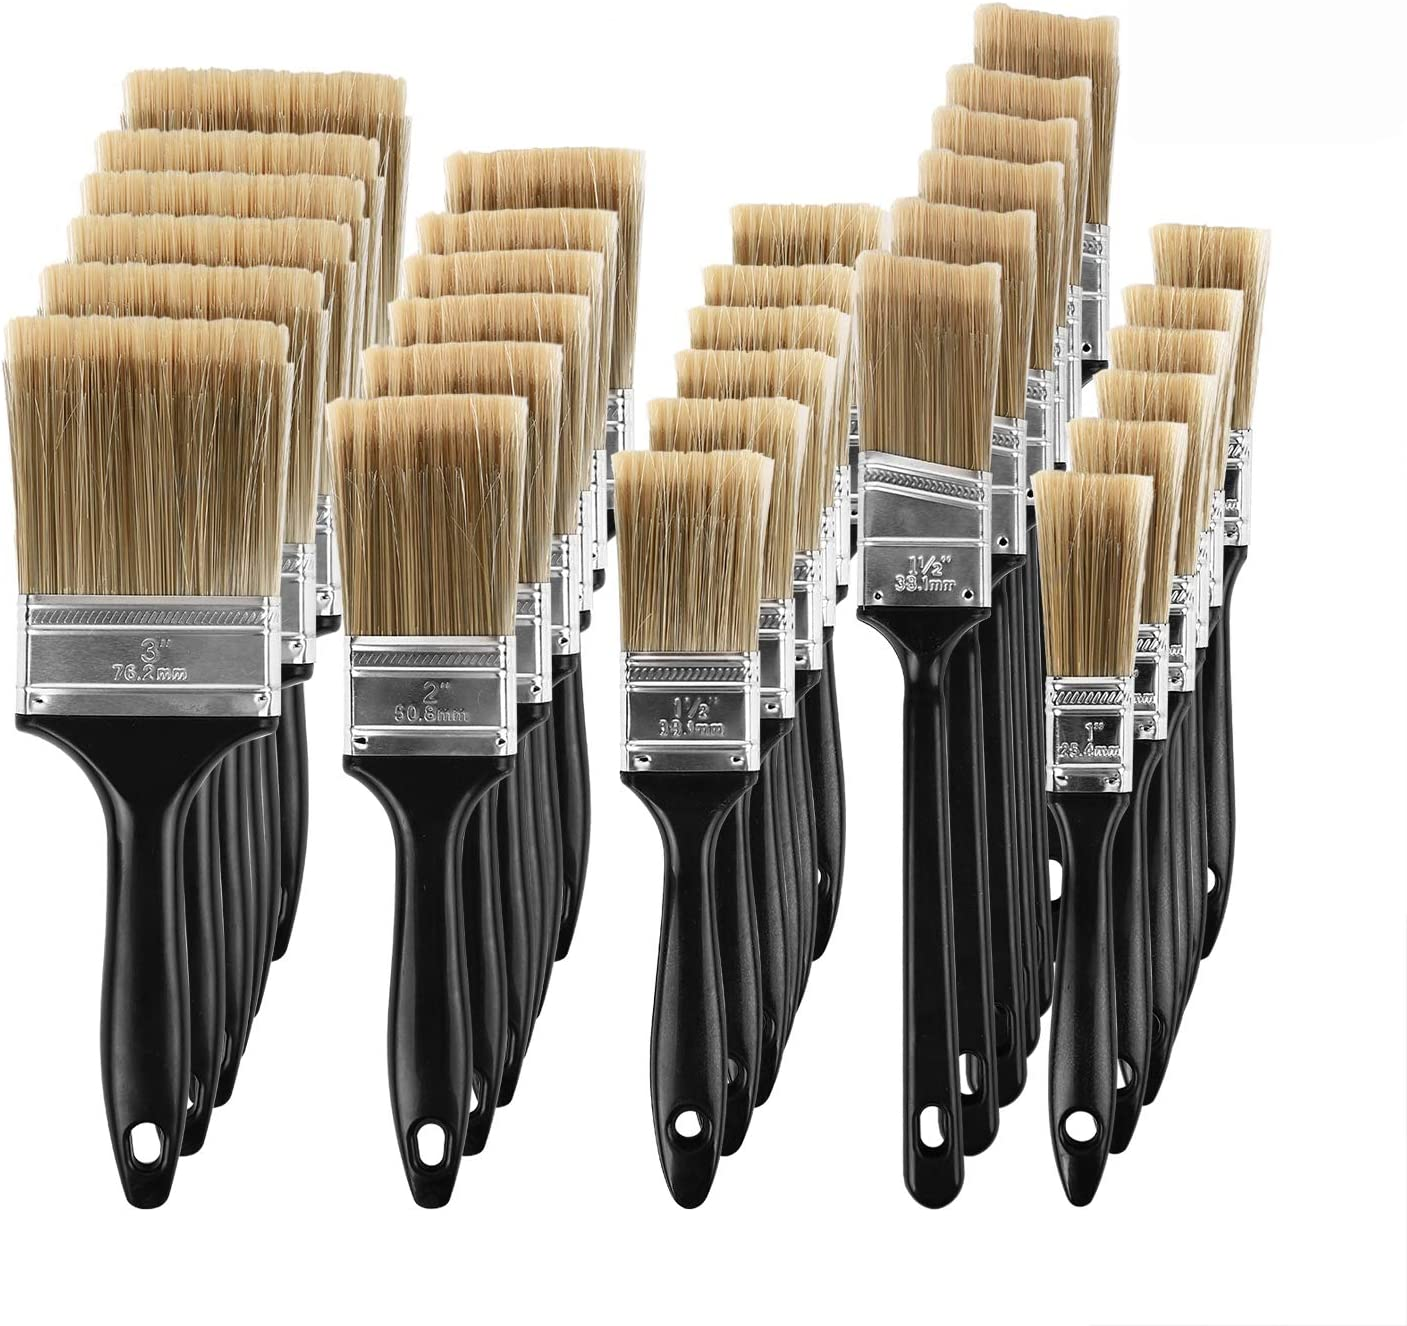 KINJOEK Paint Brush 30 Pieces, Home Wall Trim House Chip Paintbrush Set, Professional Multi-Purpose Home Repair Tools for DIY Paint Stains Varnishes Glues Acrylics Cabinet Deck Fence Edge Door